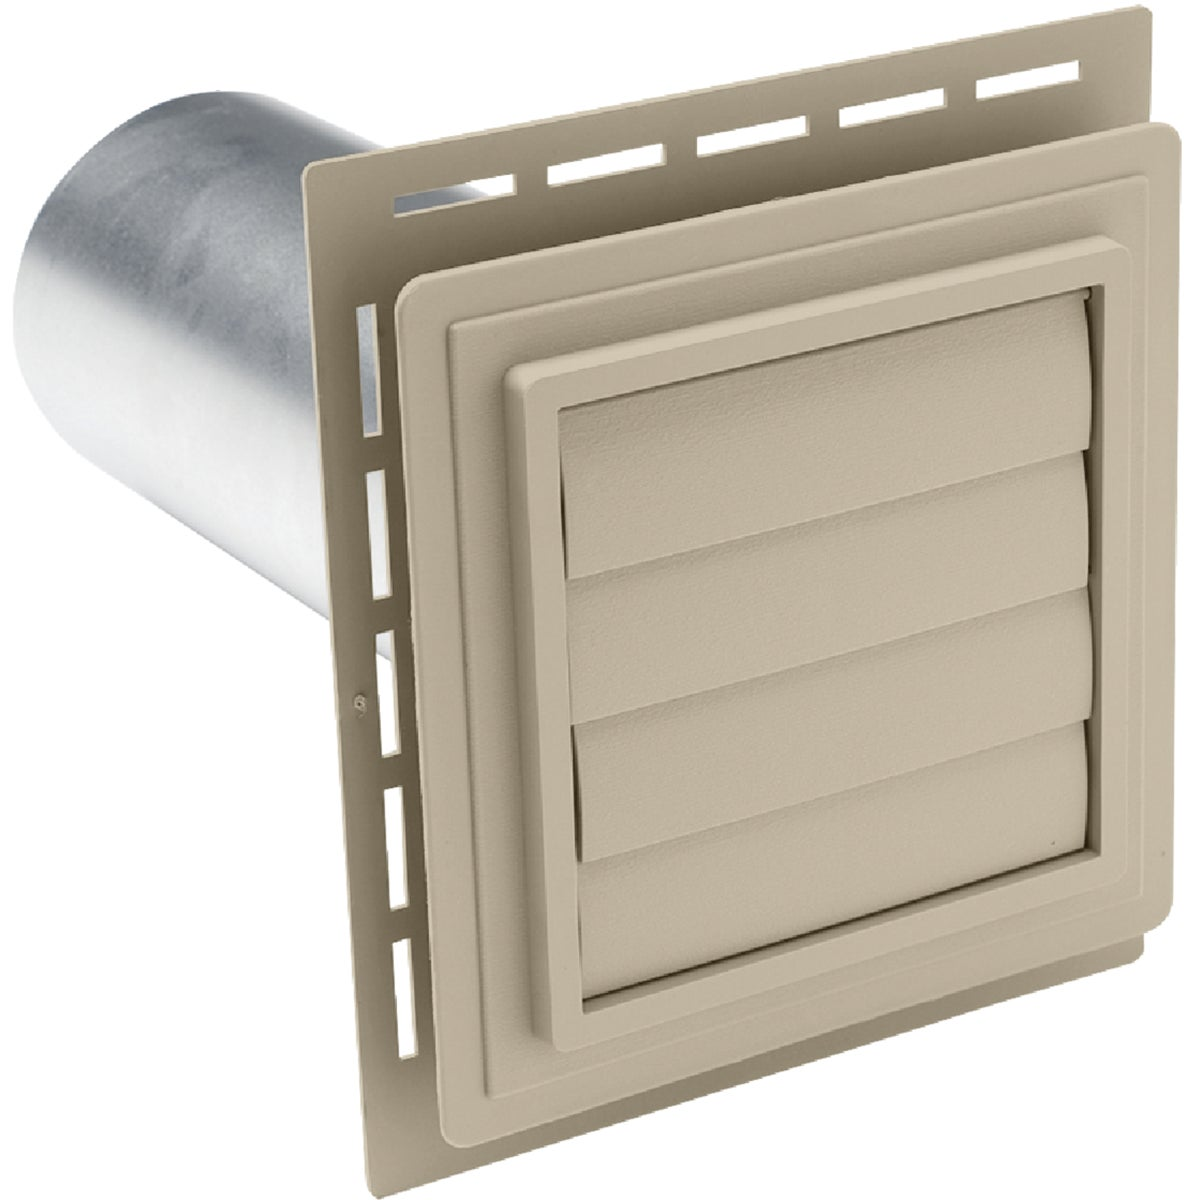 TAN EXHAUST VENT - EXVENT A7 by Alcoa Home Exteriors